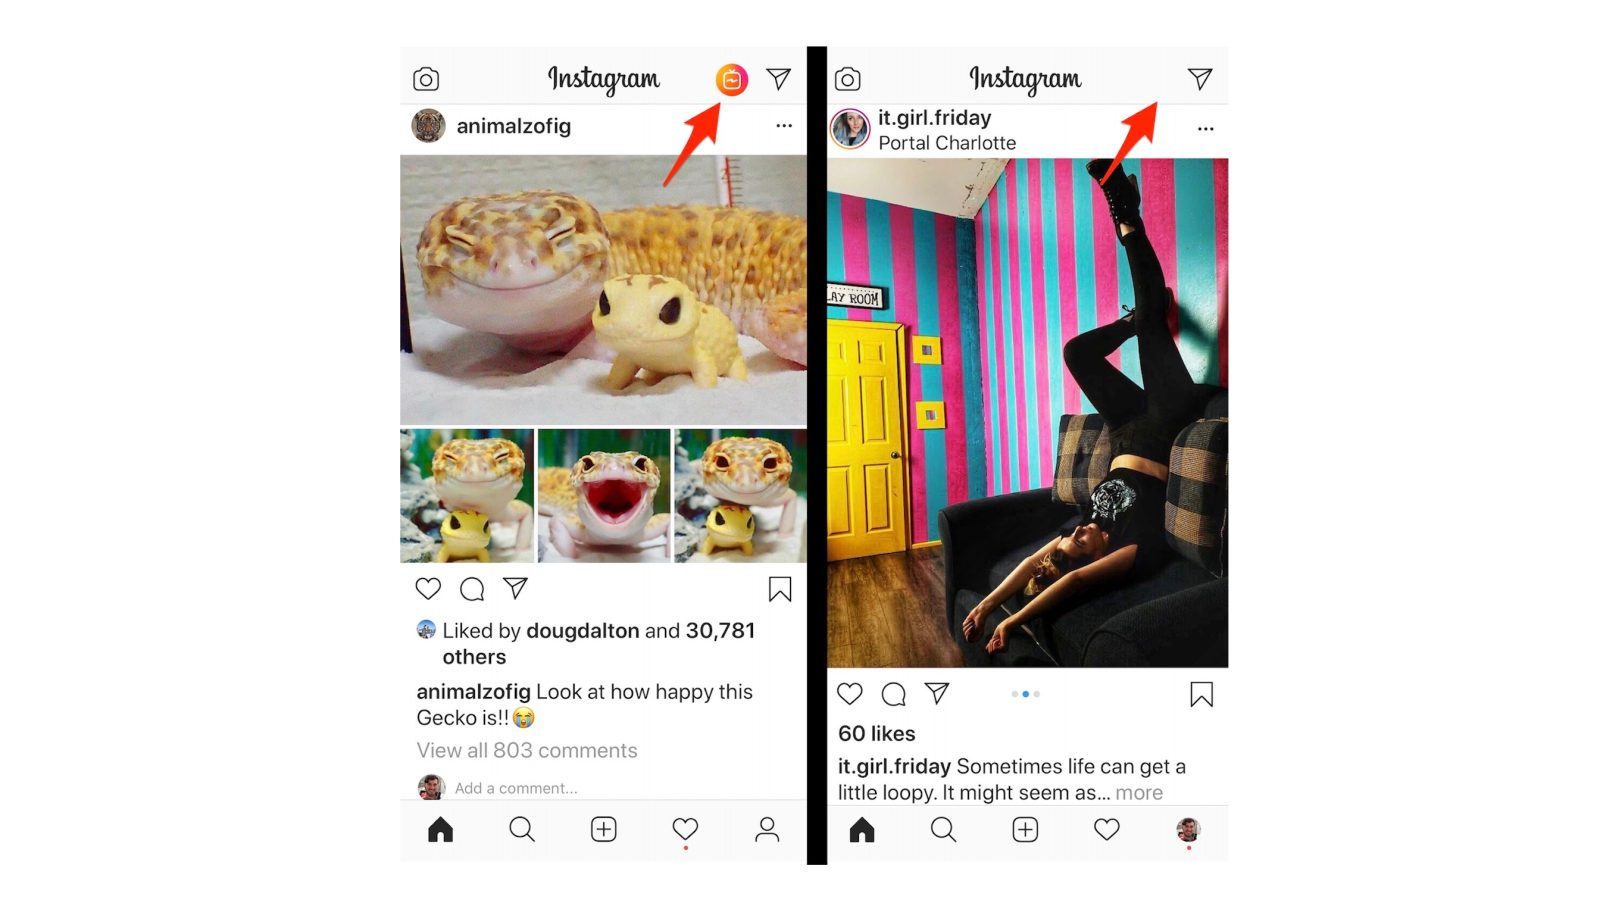 Instagram drops IGTV button as the platform struggles to gain adoption